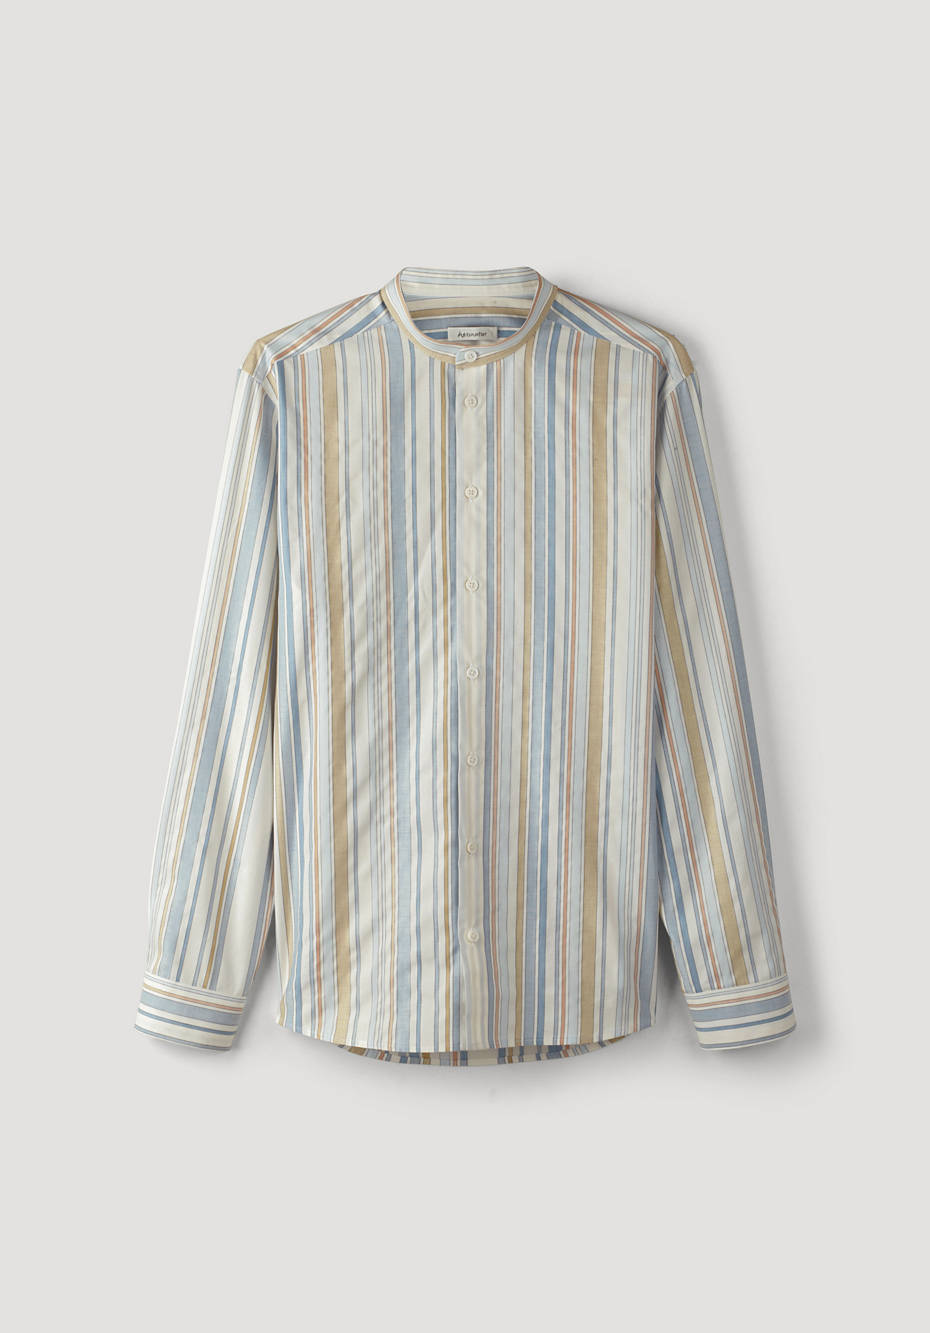 Comfort Fit striped shirt made of pure organic cotton